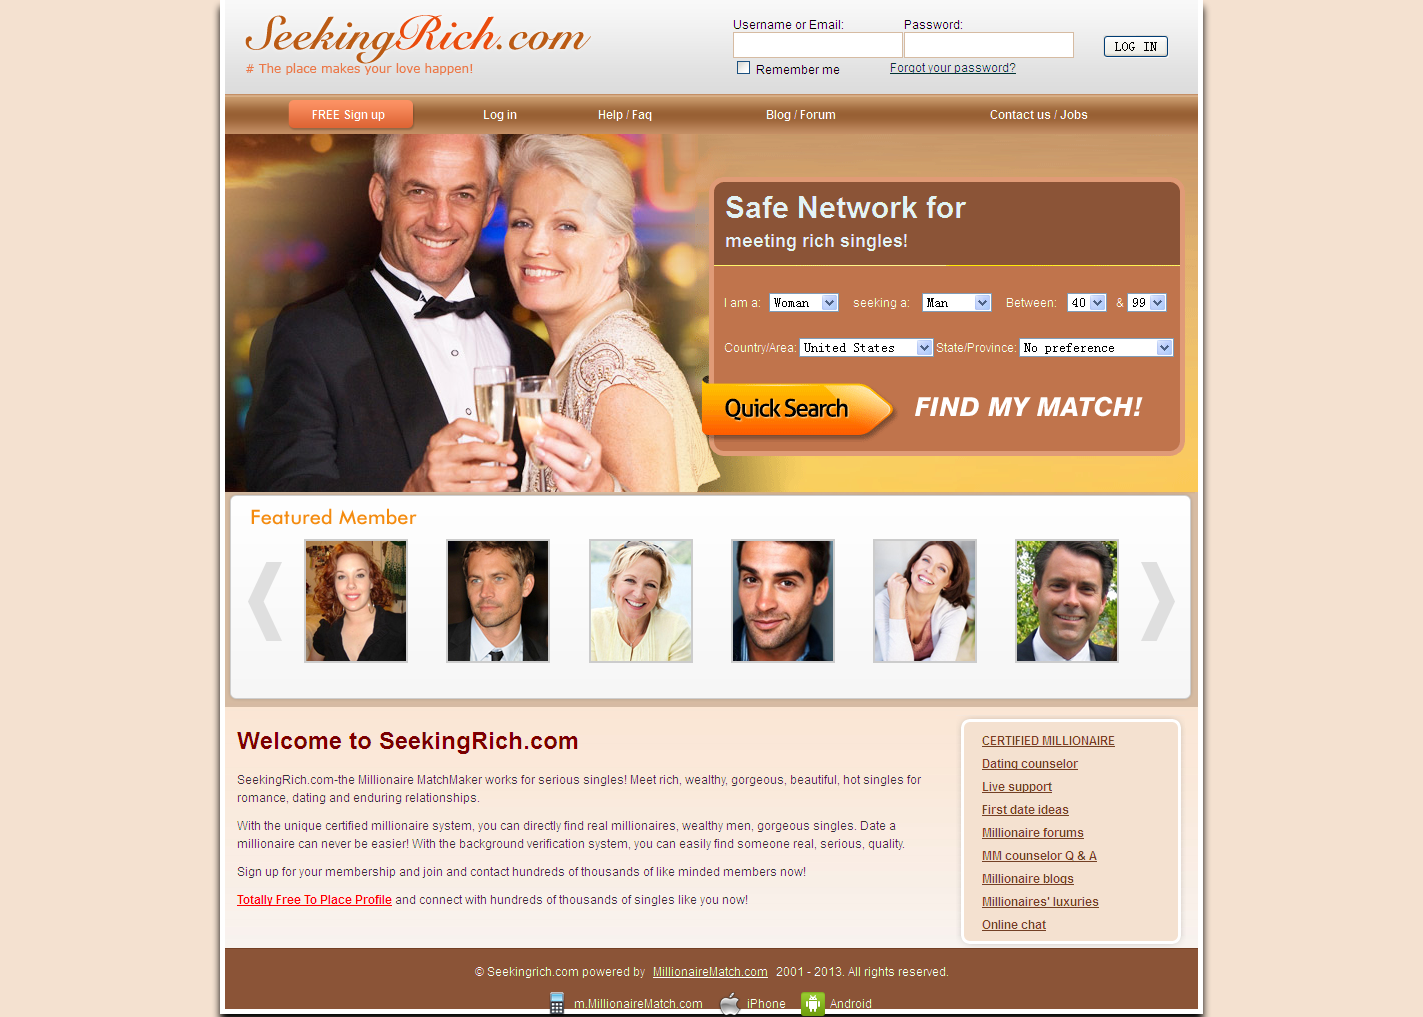 Free and rich dating sites